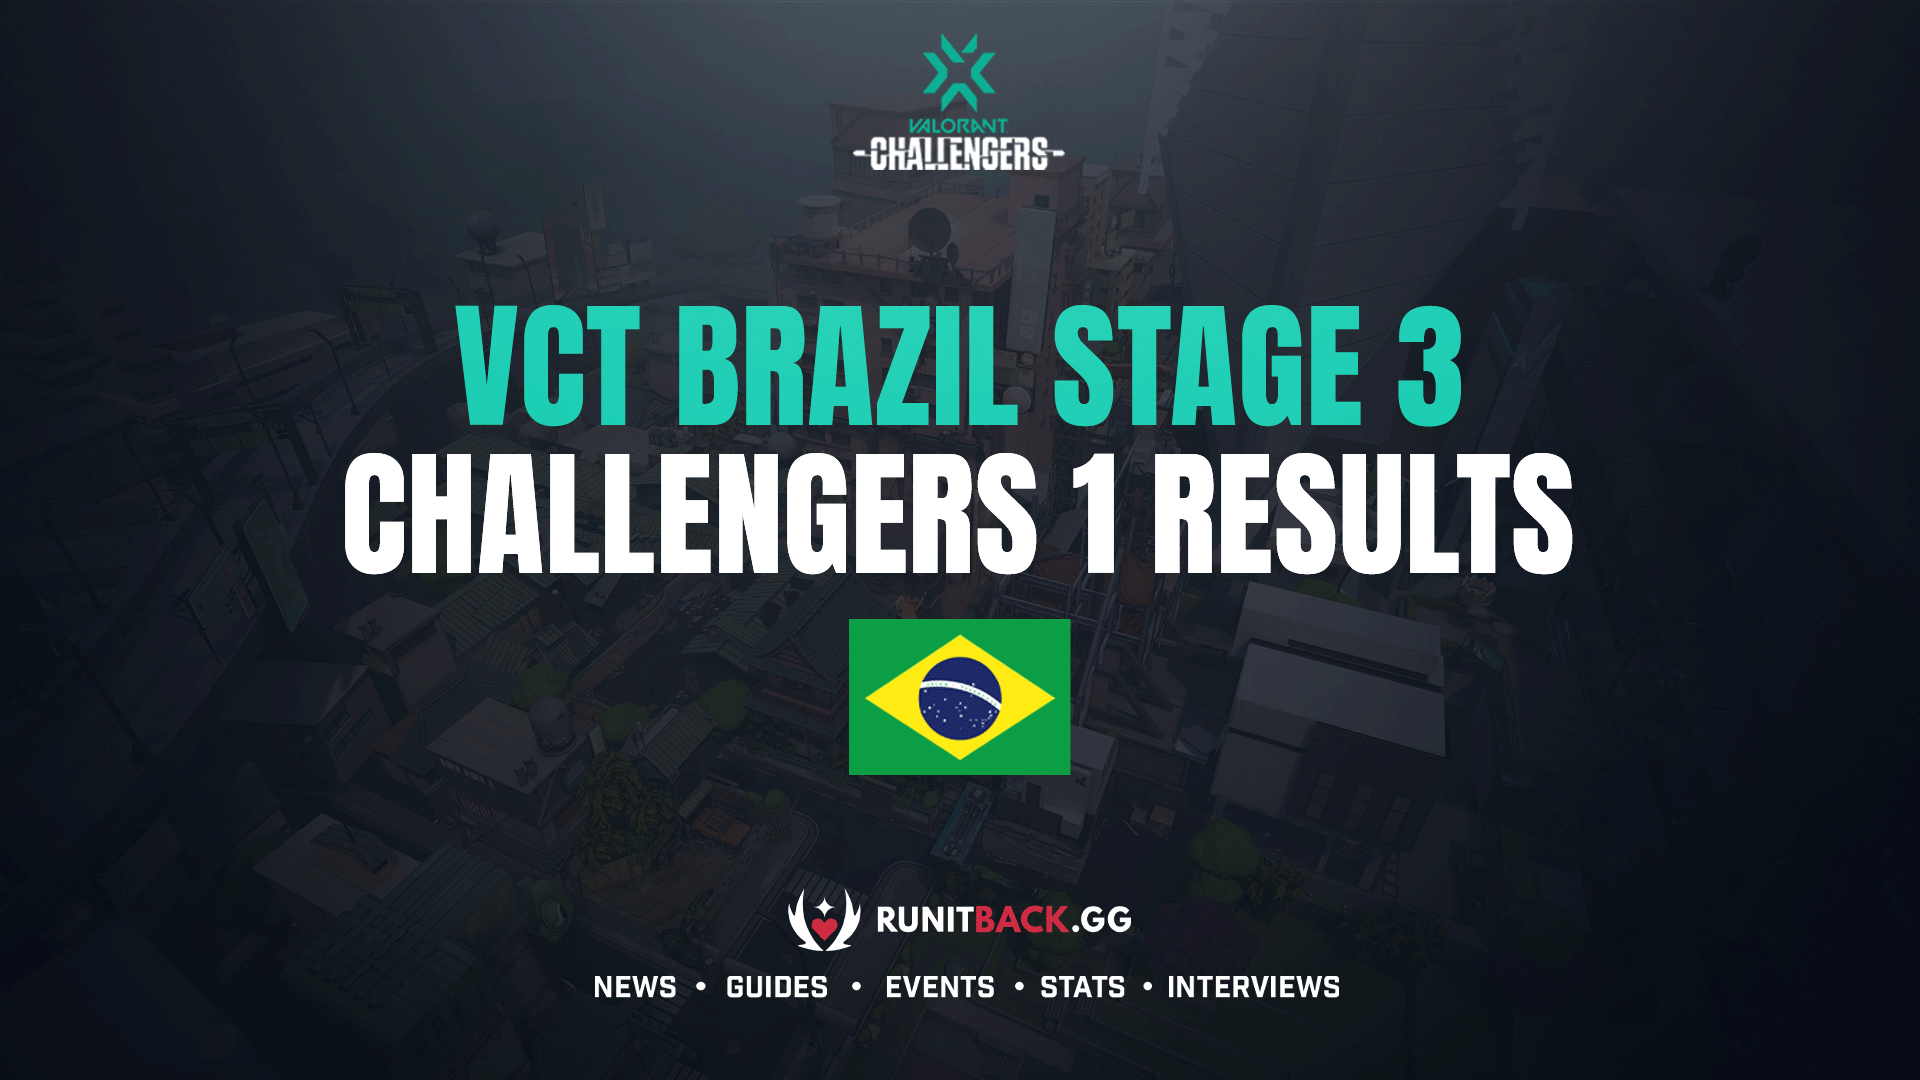 VCT Brazil Stage 3: Challengers 1 Results